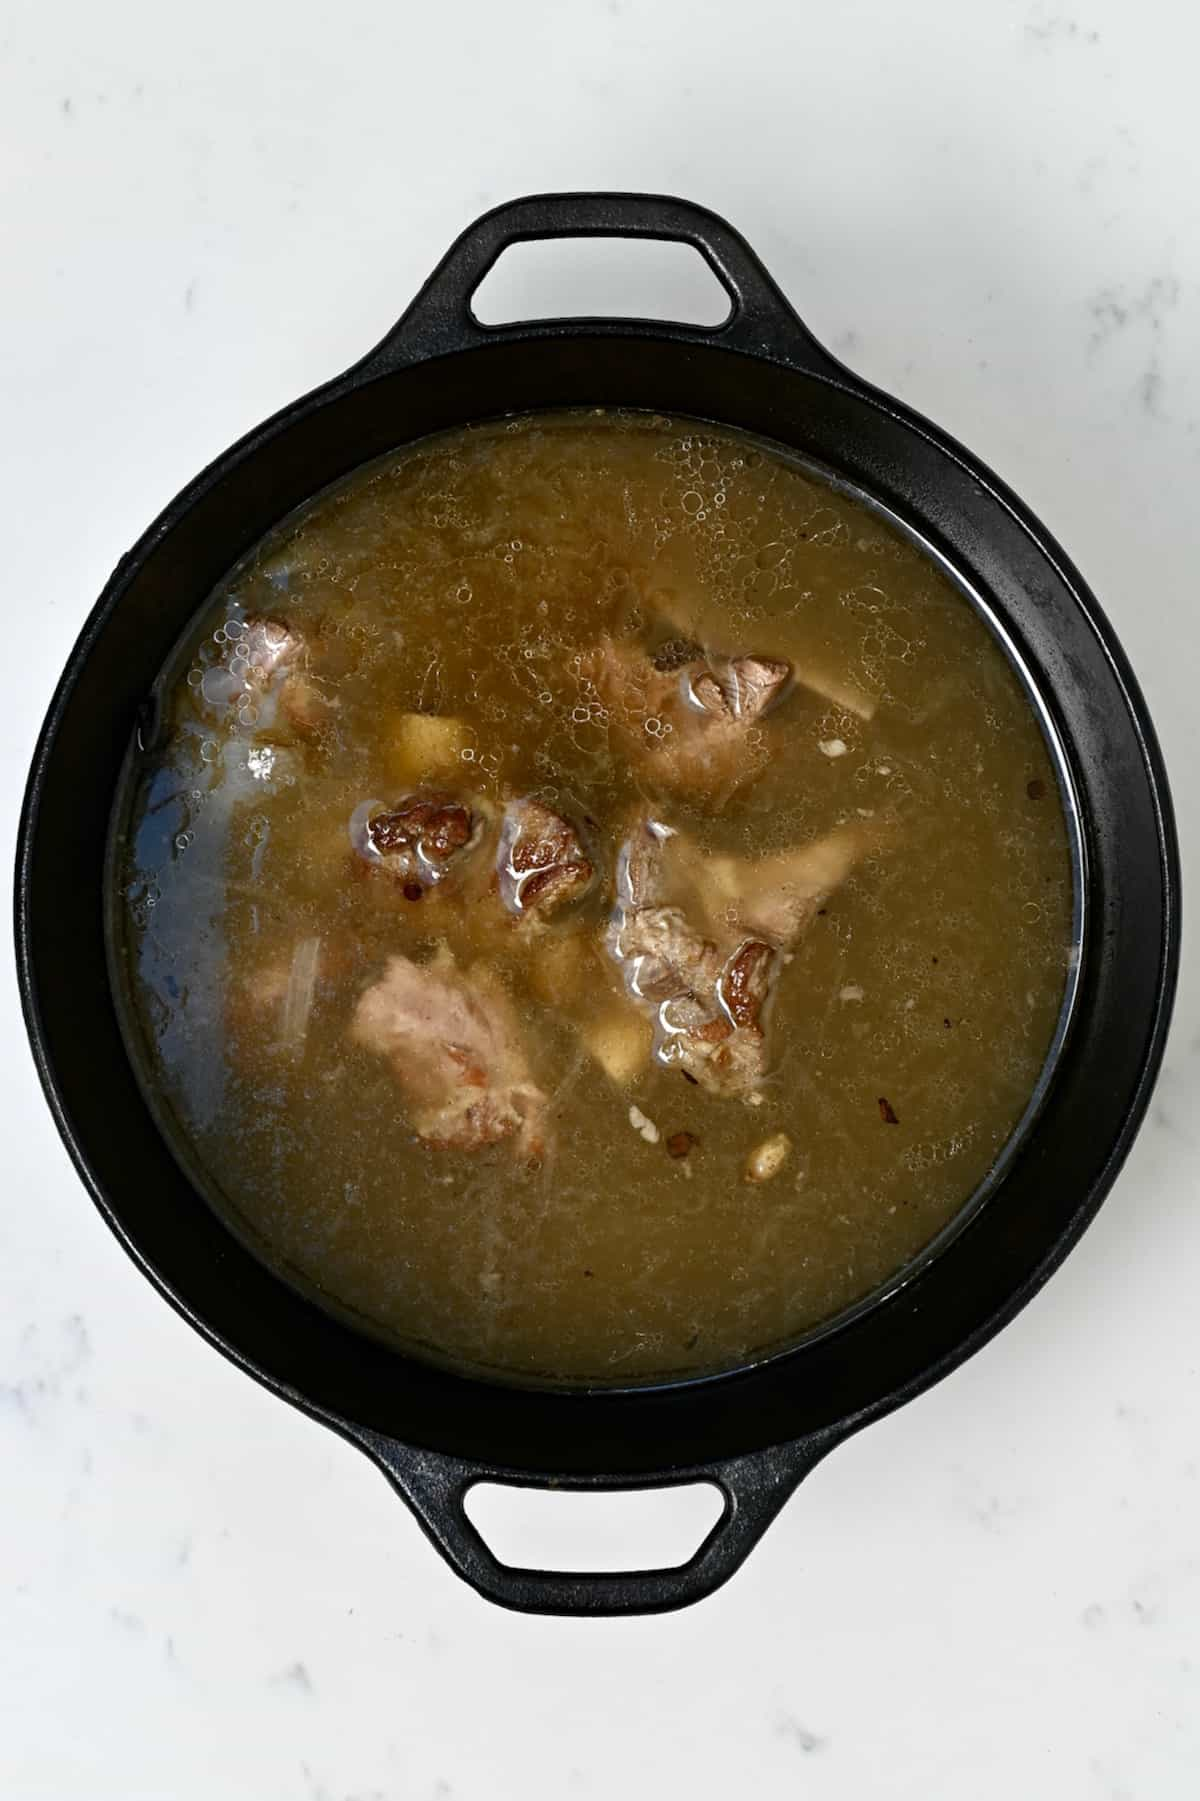 A pot with homemade beef broth